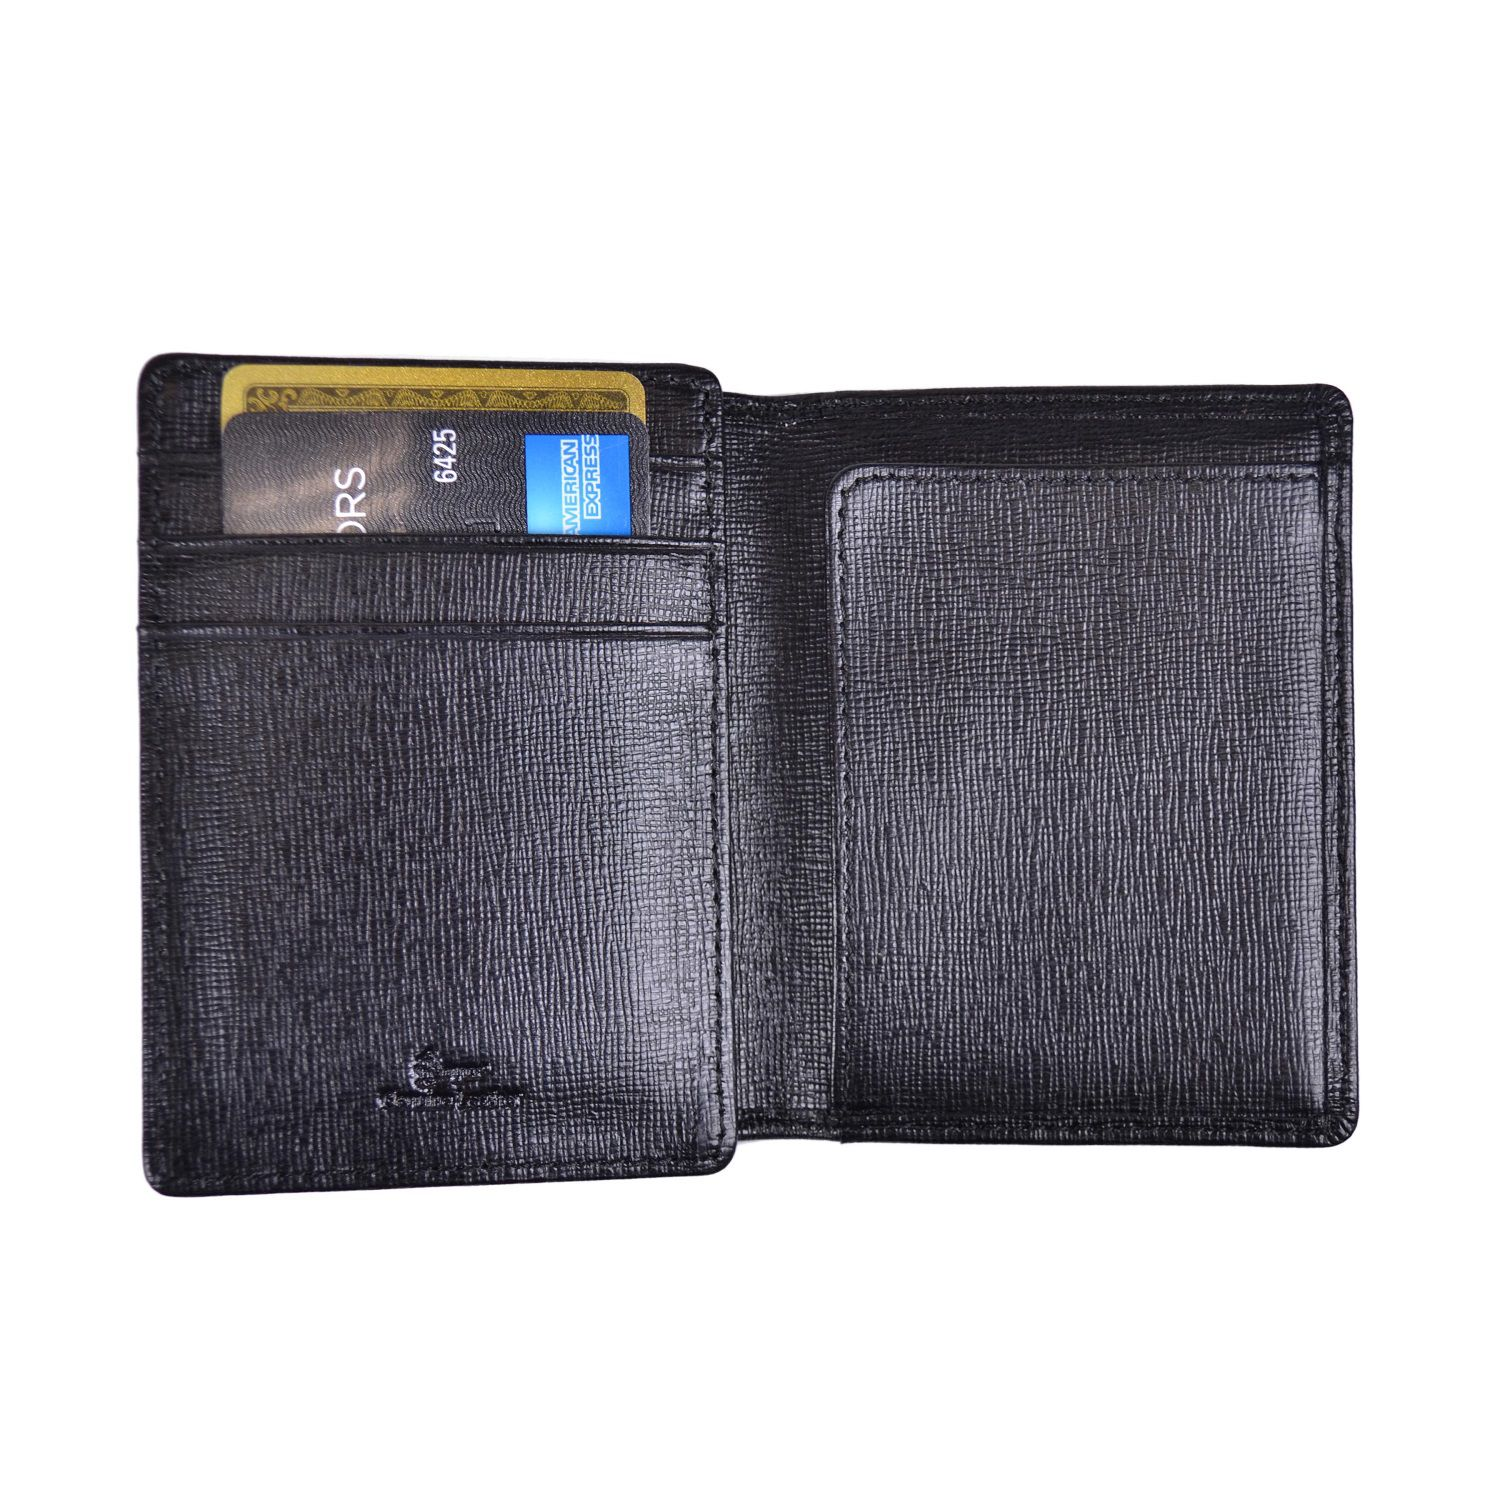 c3a9f0ca34ea Mens Royce Leather Wallets - Accessories | Kohl's